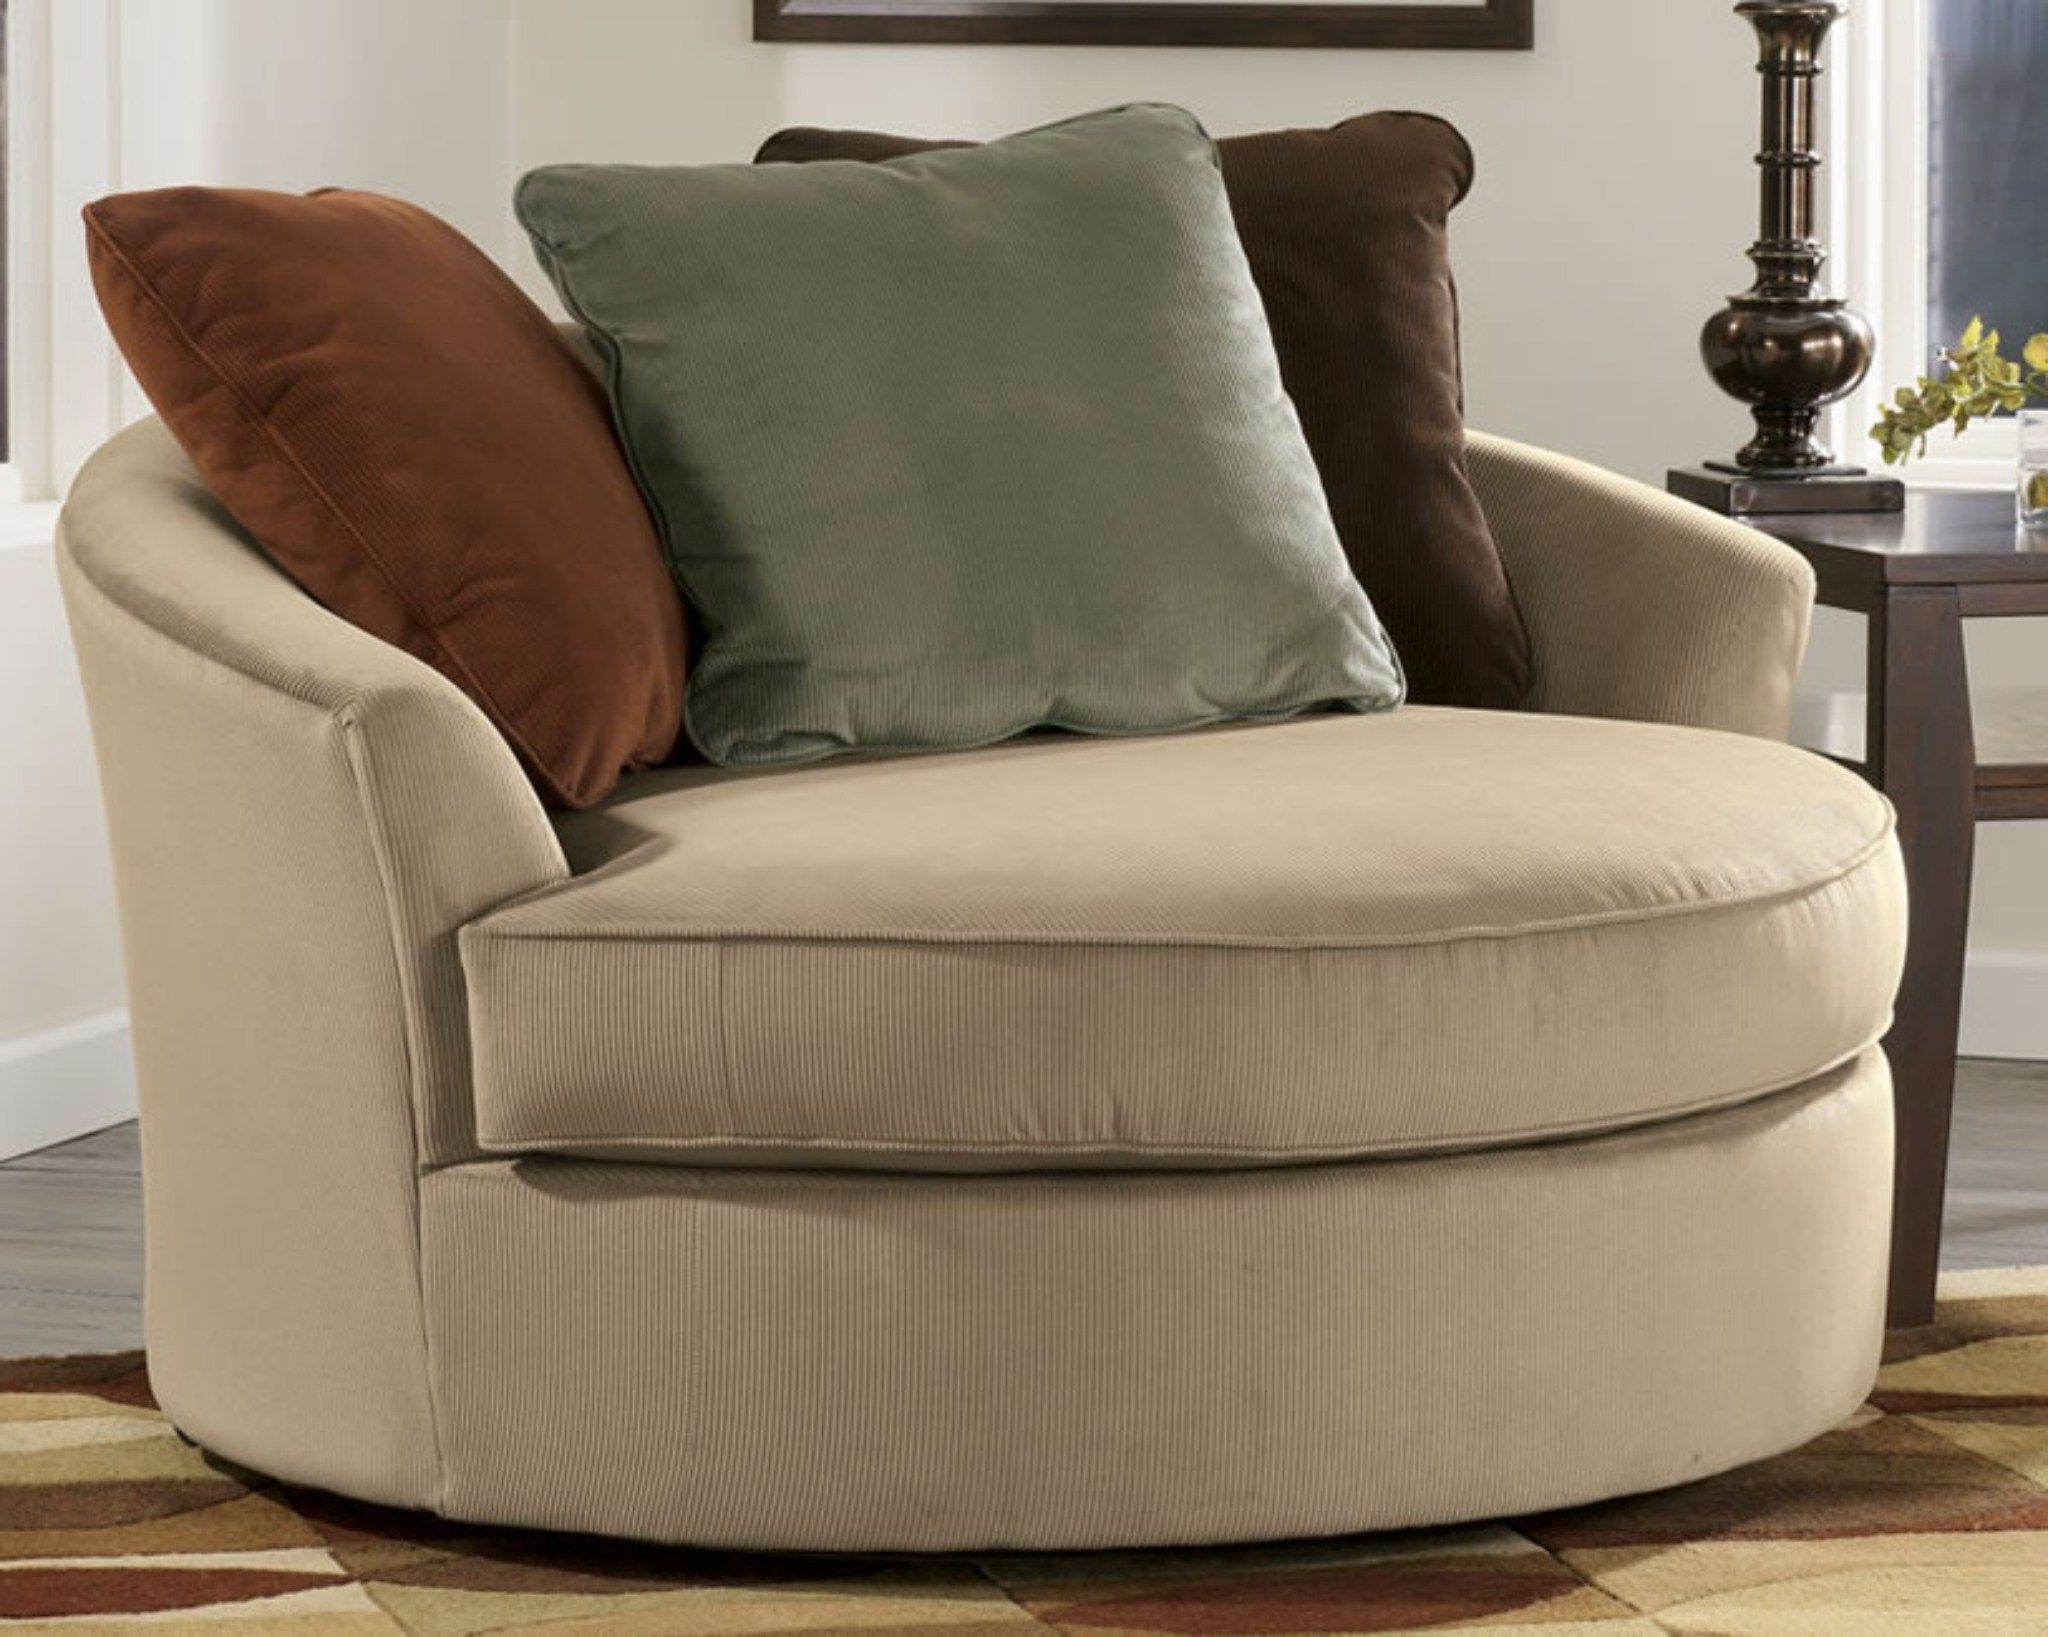 Sofa : Round Sofa Chair Living Room Furniture Round' Furniture Within Famous Sofa Chairs For Living Room (View 5 of 15)